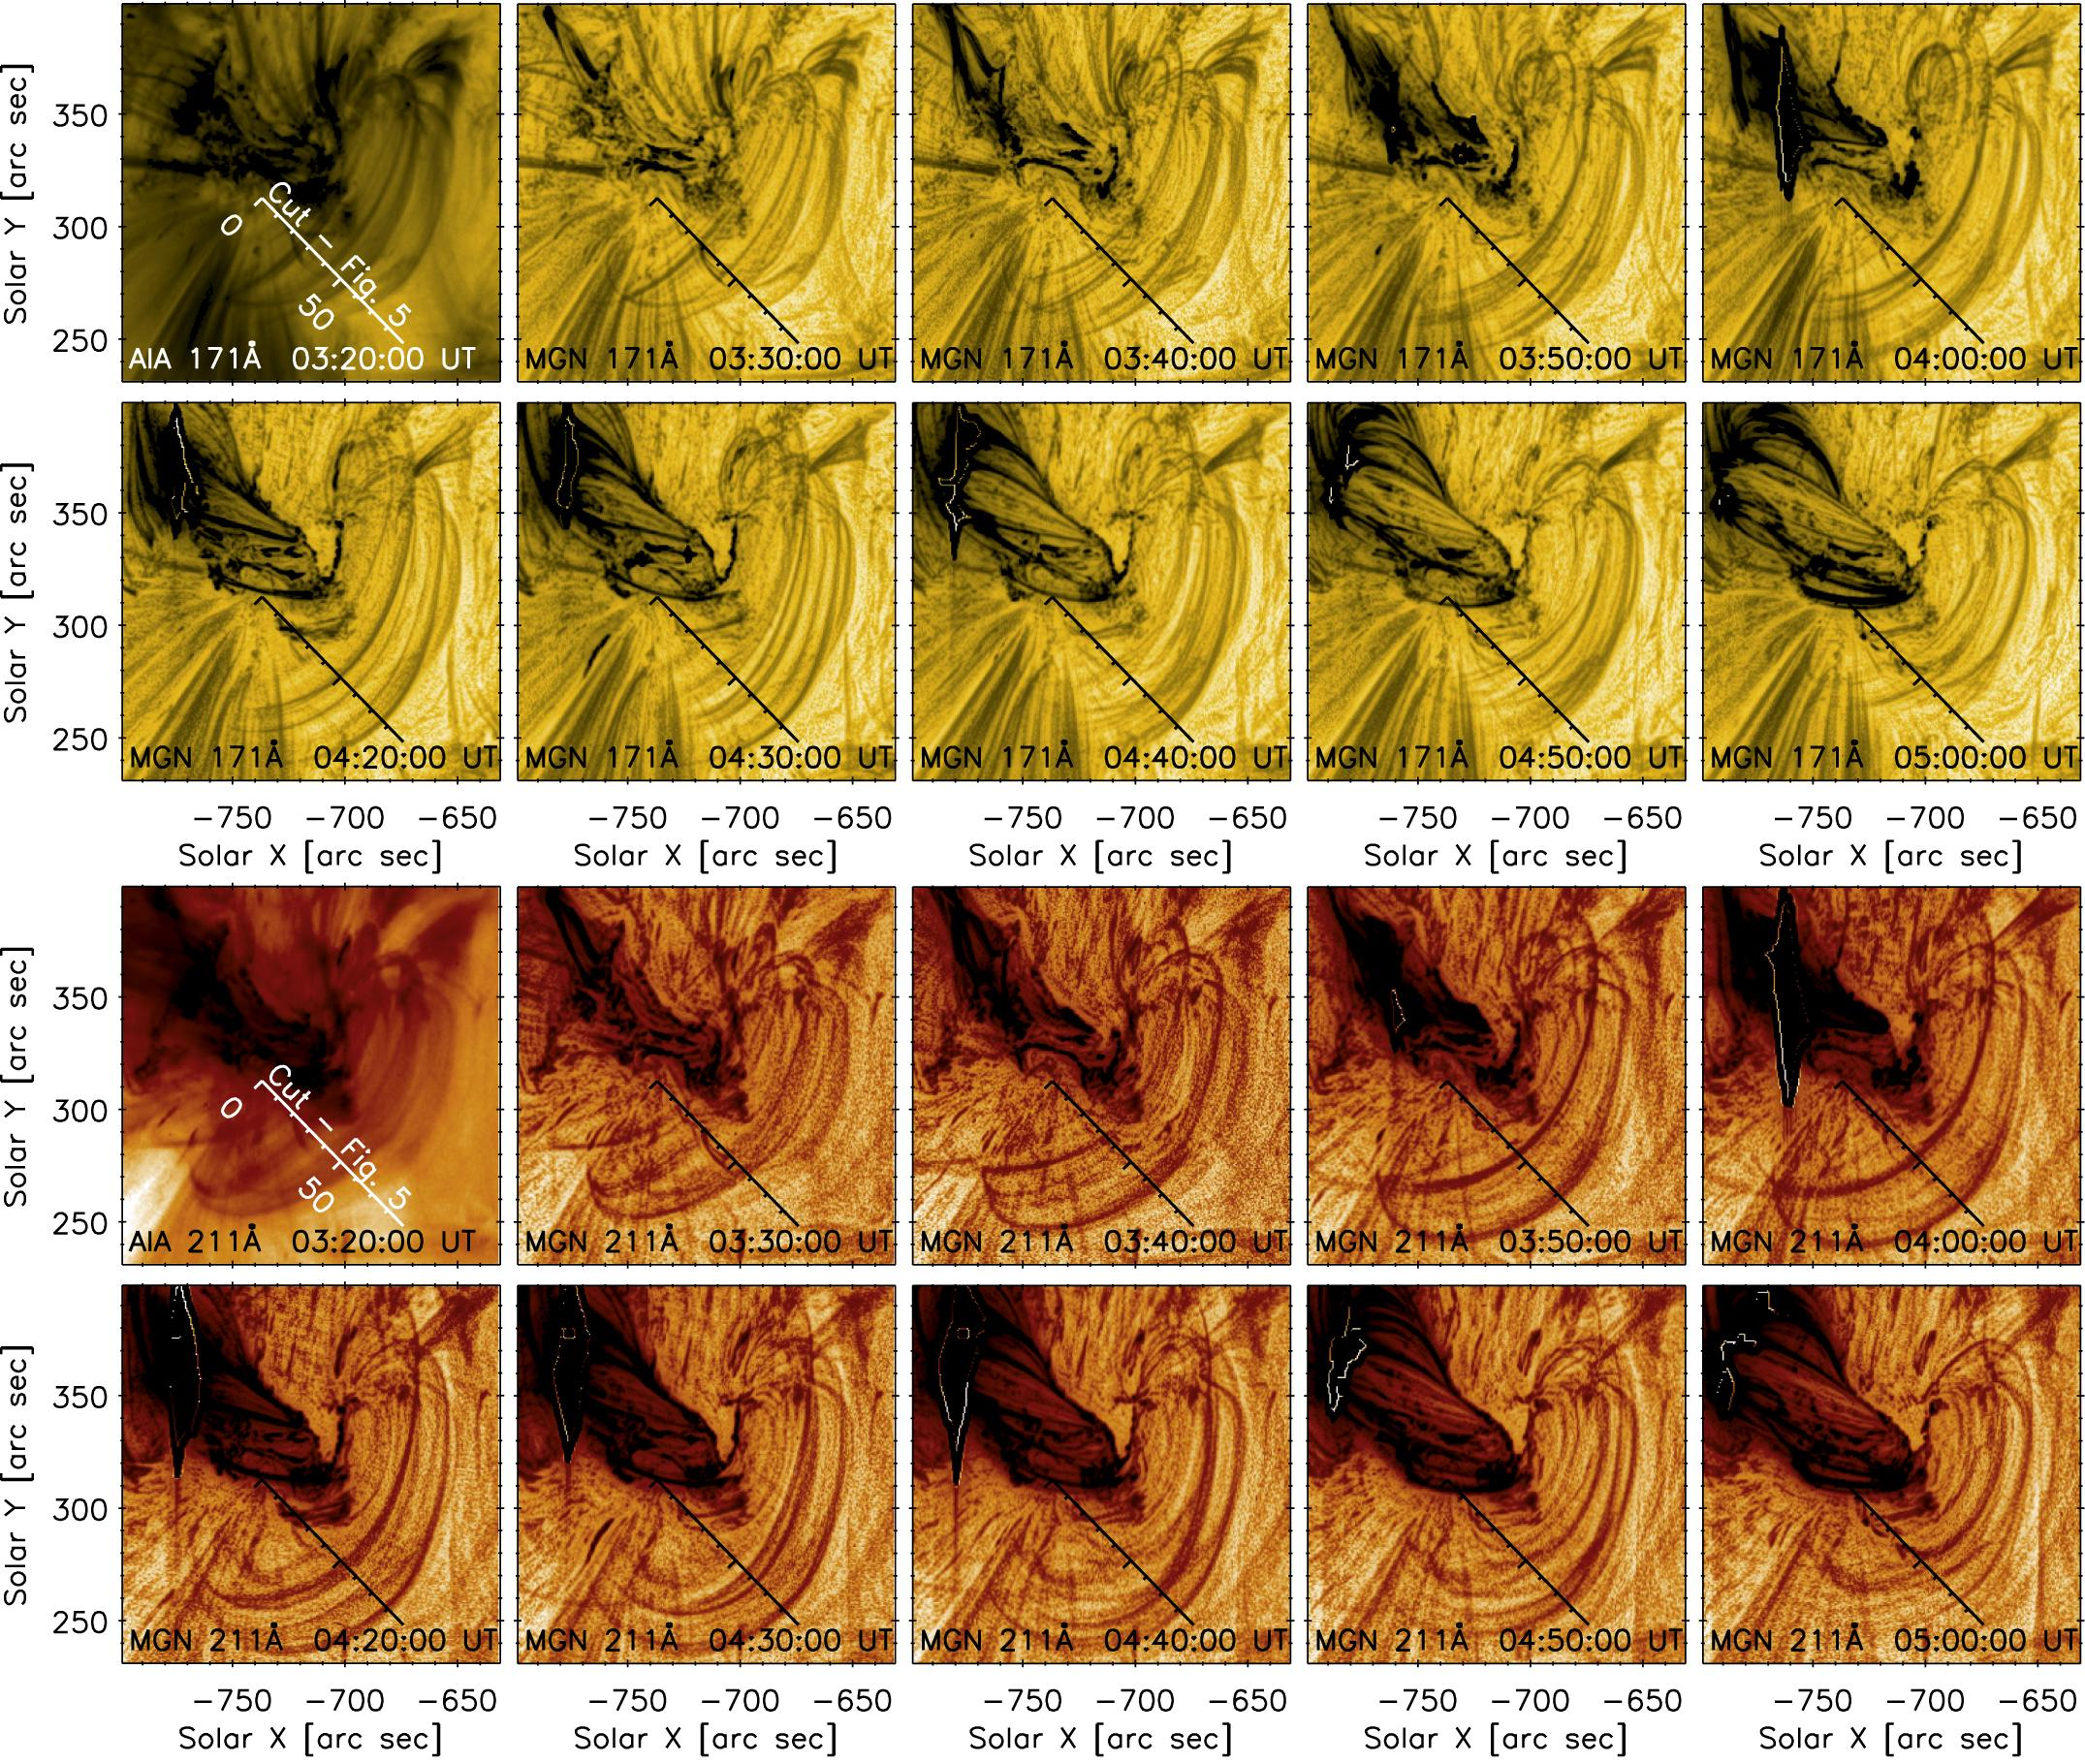 Expanding and Contracting Coronal Loops as Evidence of